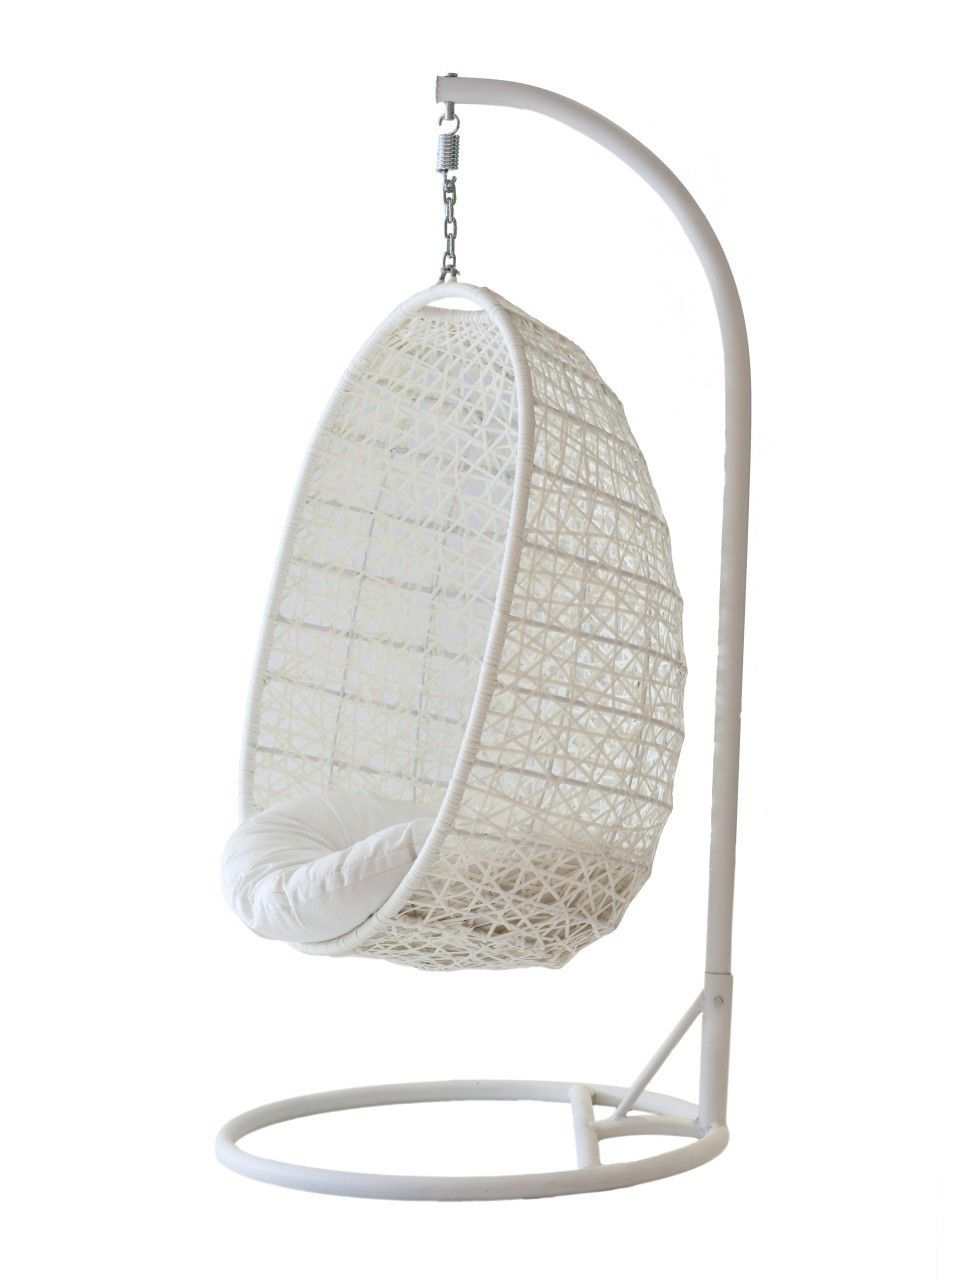 Affordable Hanging Chair For Bedroom Ikea Cool Hanging Chairs For Indoor And Within Ikea Bedroom At Hangin Hanging Chair Indoor Hanging Chair Hanging Egg Chair